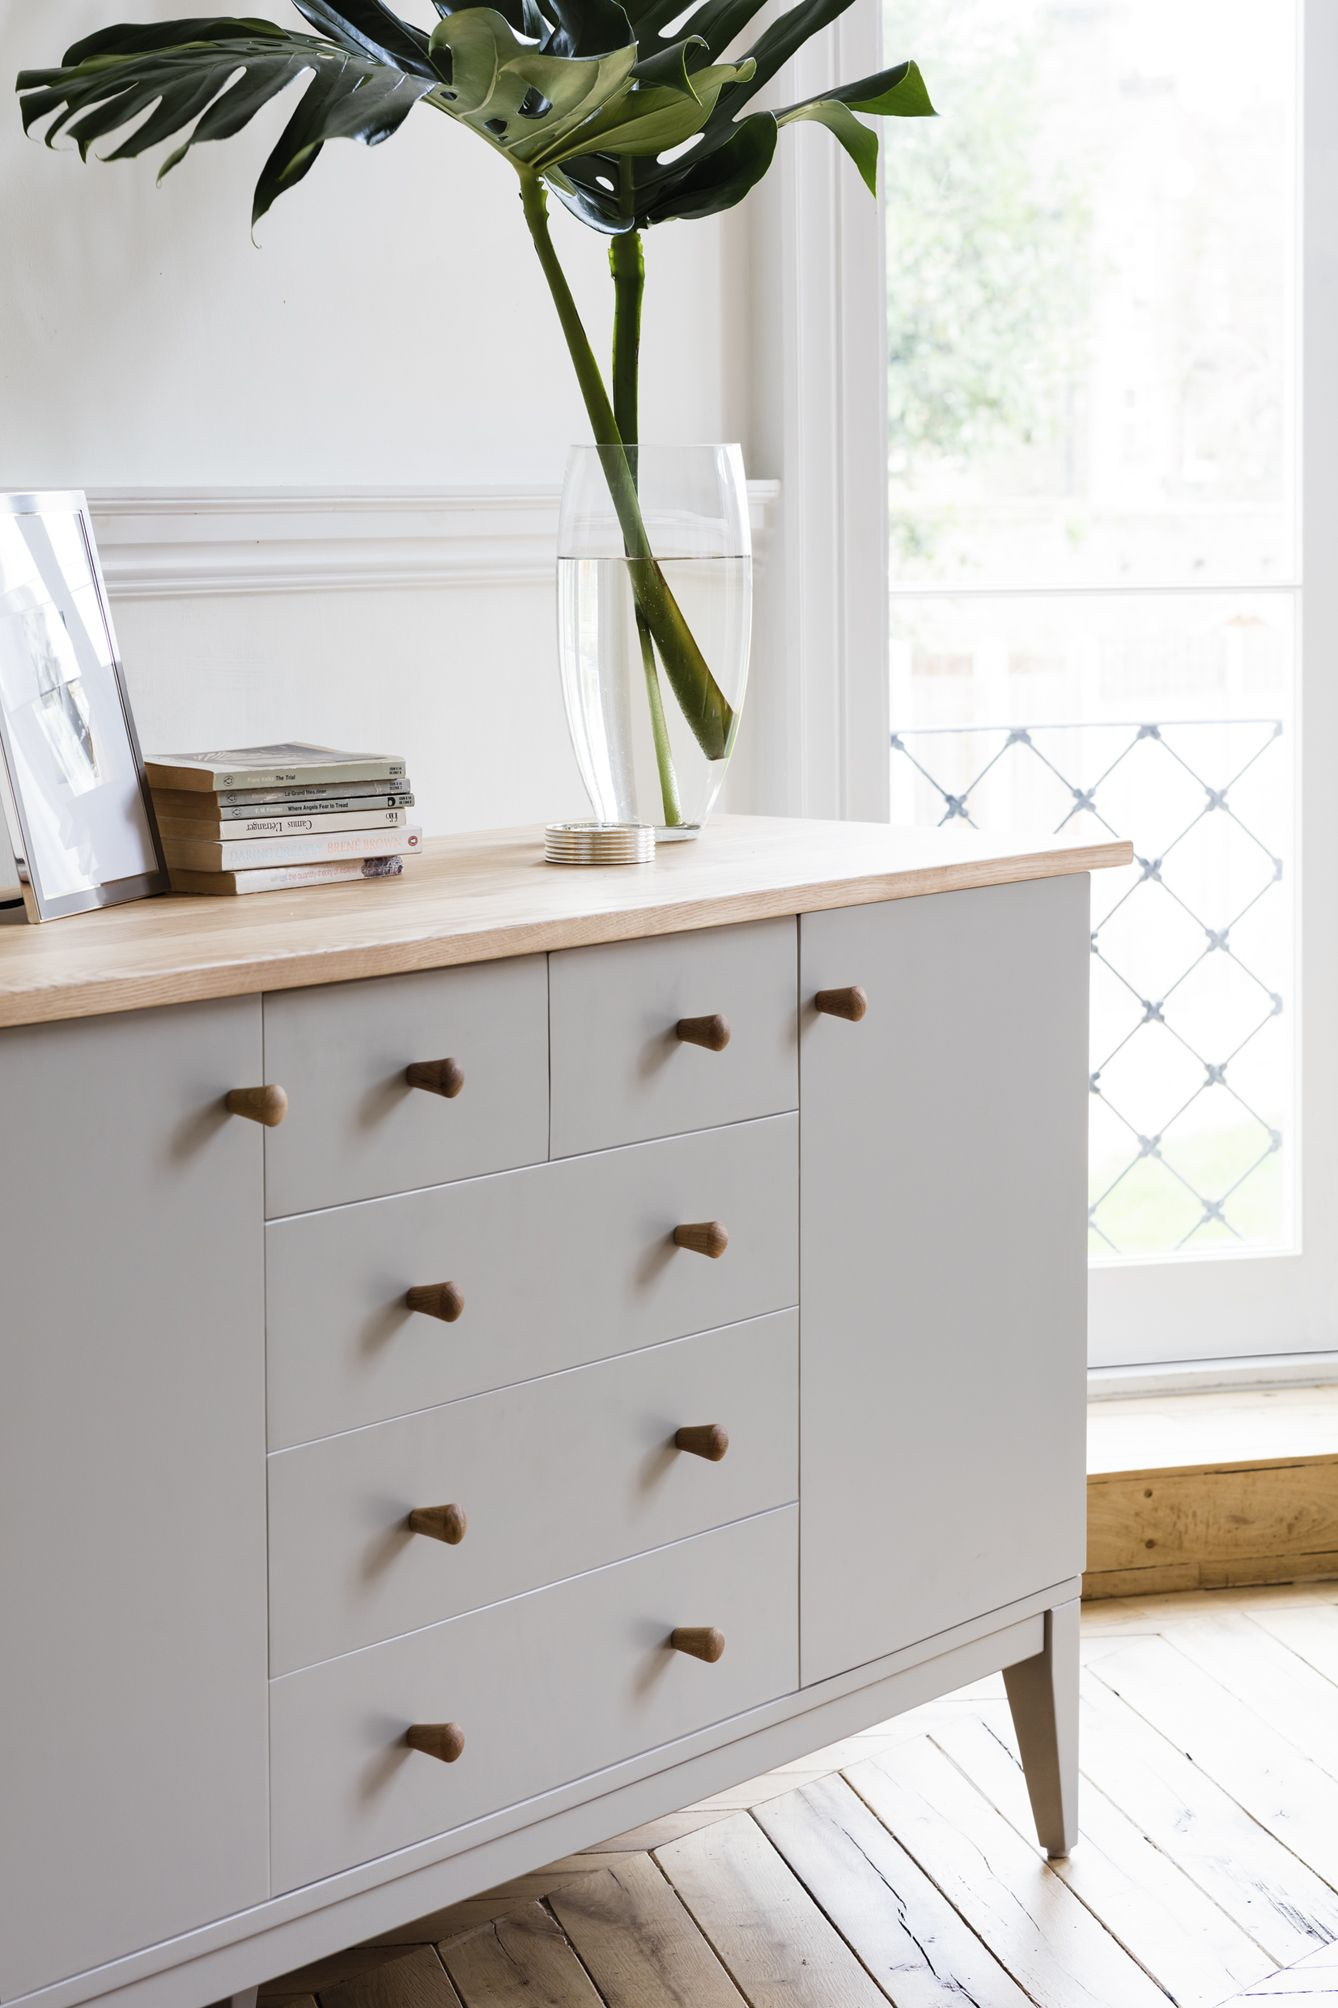 Stylish yet simple that creates a touch of informal luxury